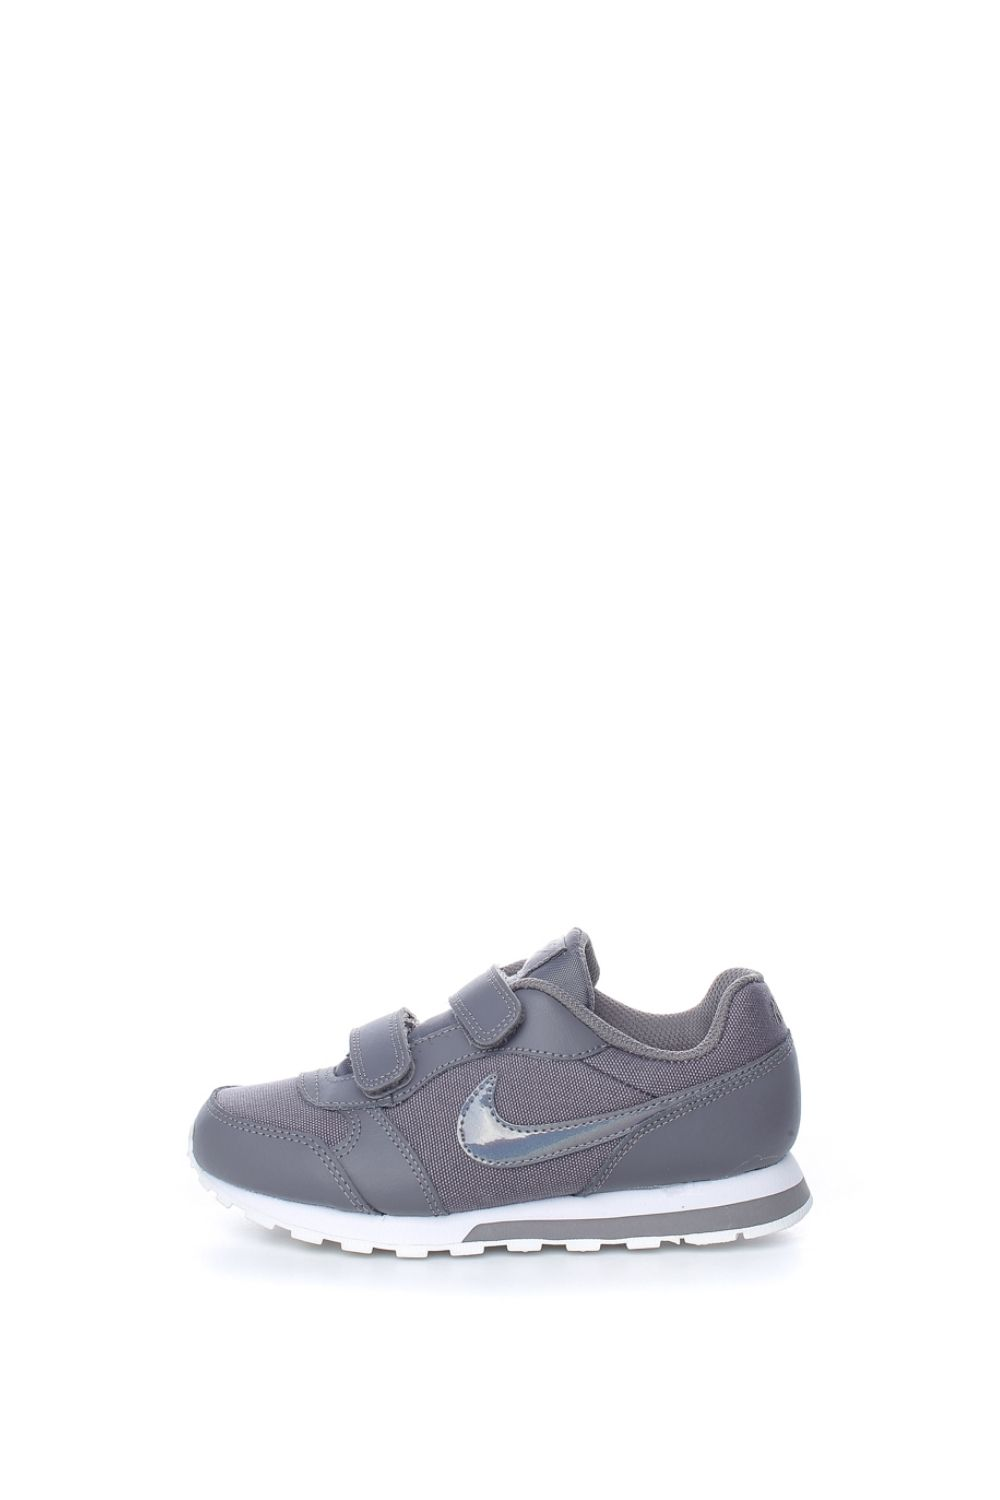 the best attitude 7533a 119cd -15% Collective Online NIKE – Κοριτσίστικα αθλητικά παπούτσια NIKE MD  RUNNER 2 (PSV) γκρι